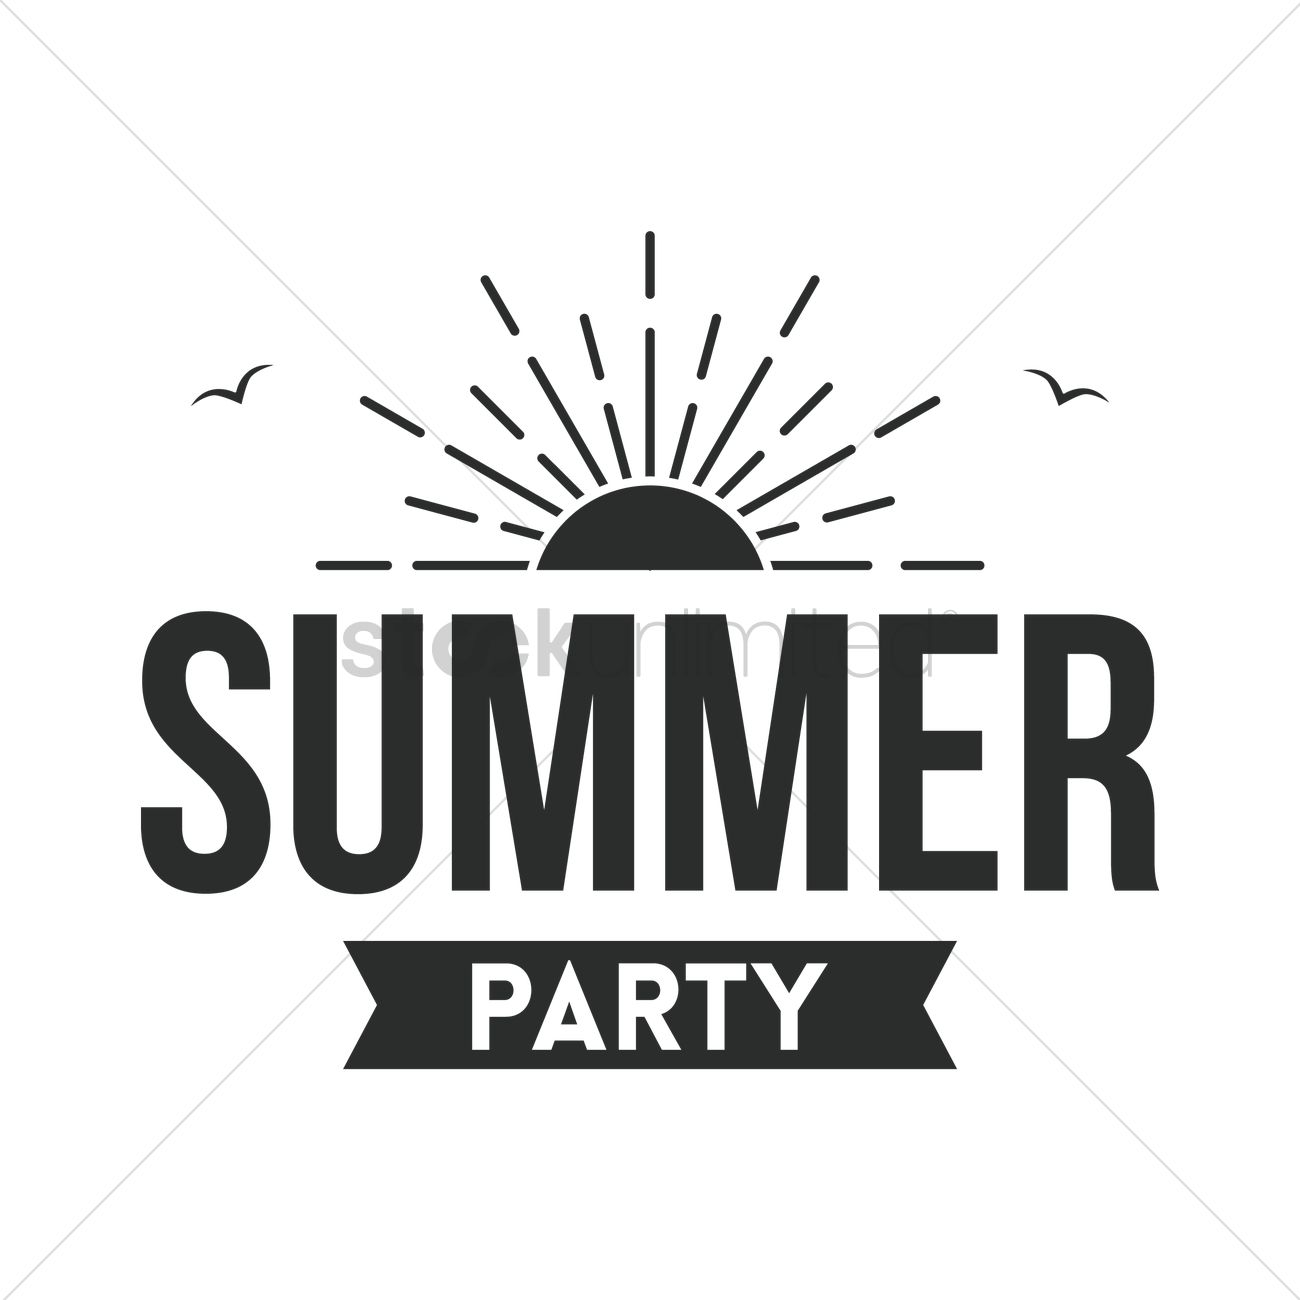 Summer Party Label Vector Image